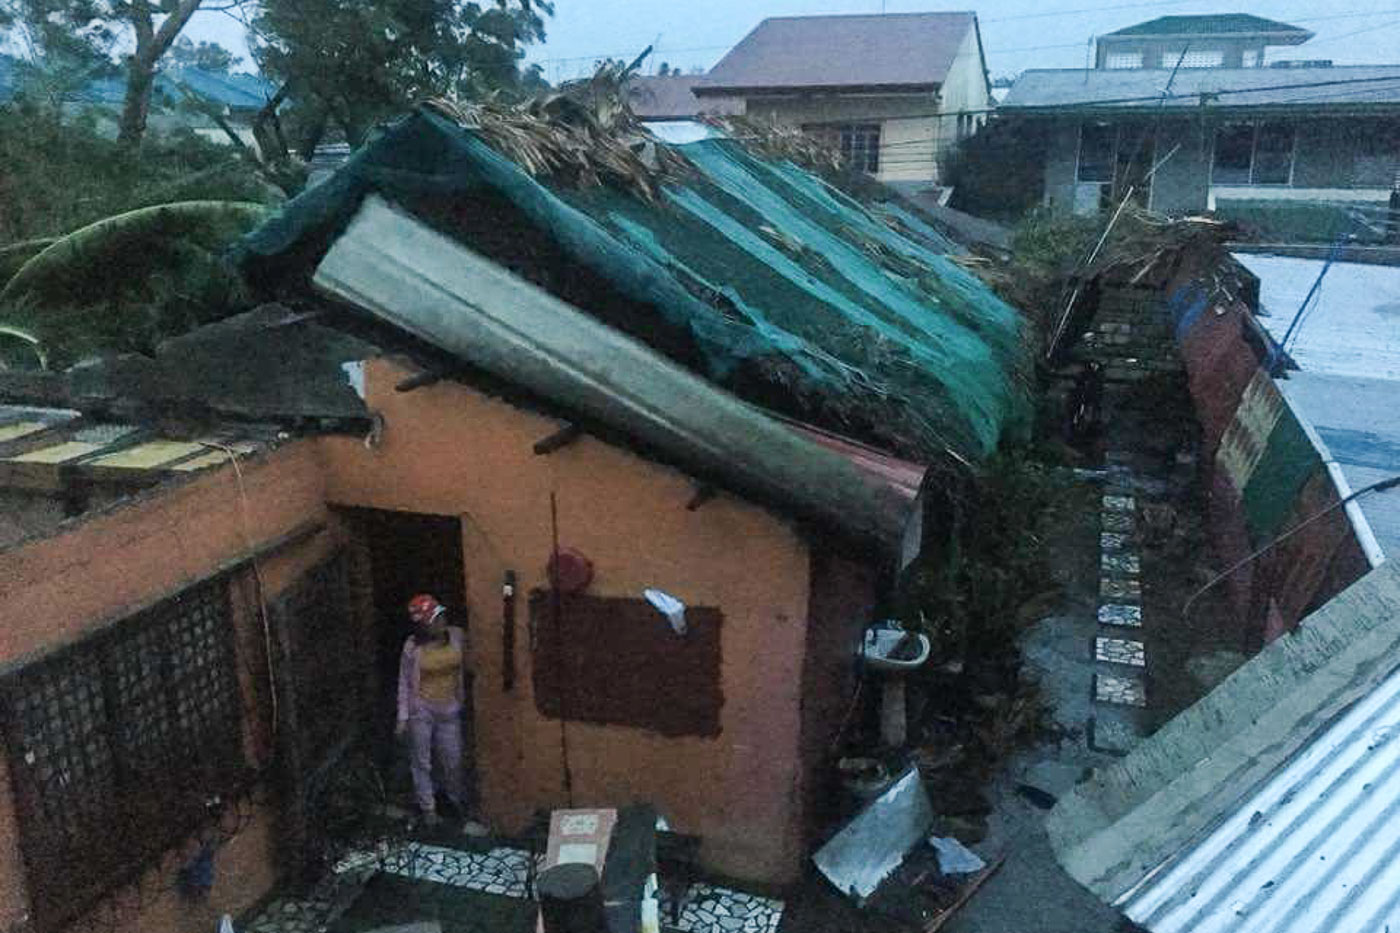 BLOWN OFF. Strong winds rip roofs off houses in Laoag City, Ilocos Norte. Photo by MJ Valiente Valdez